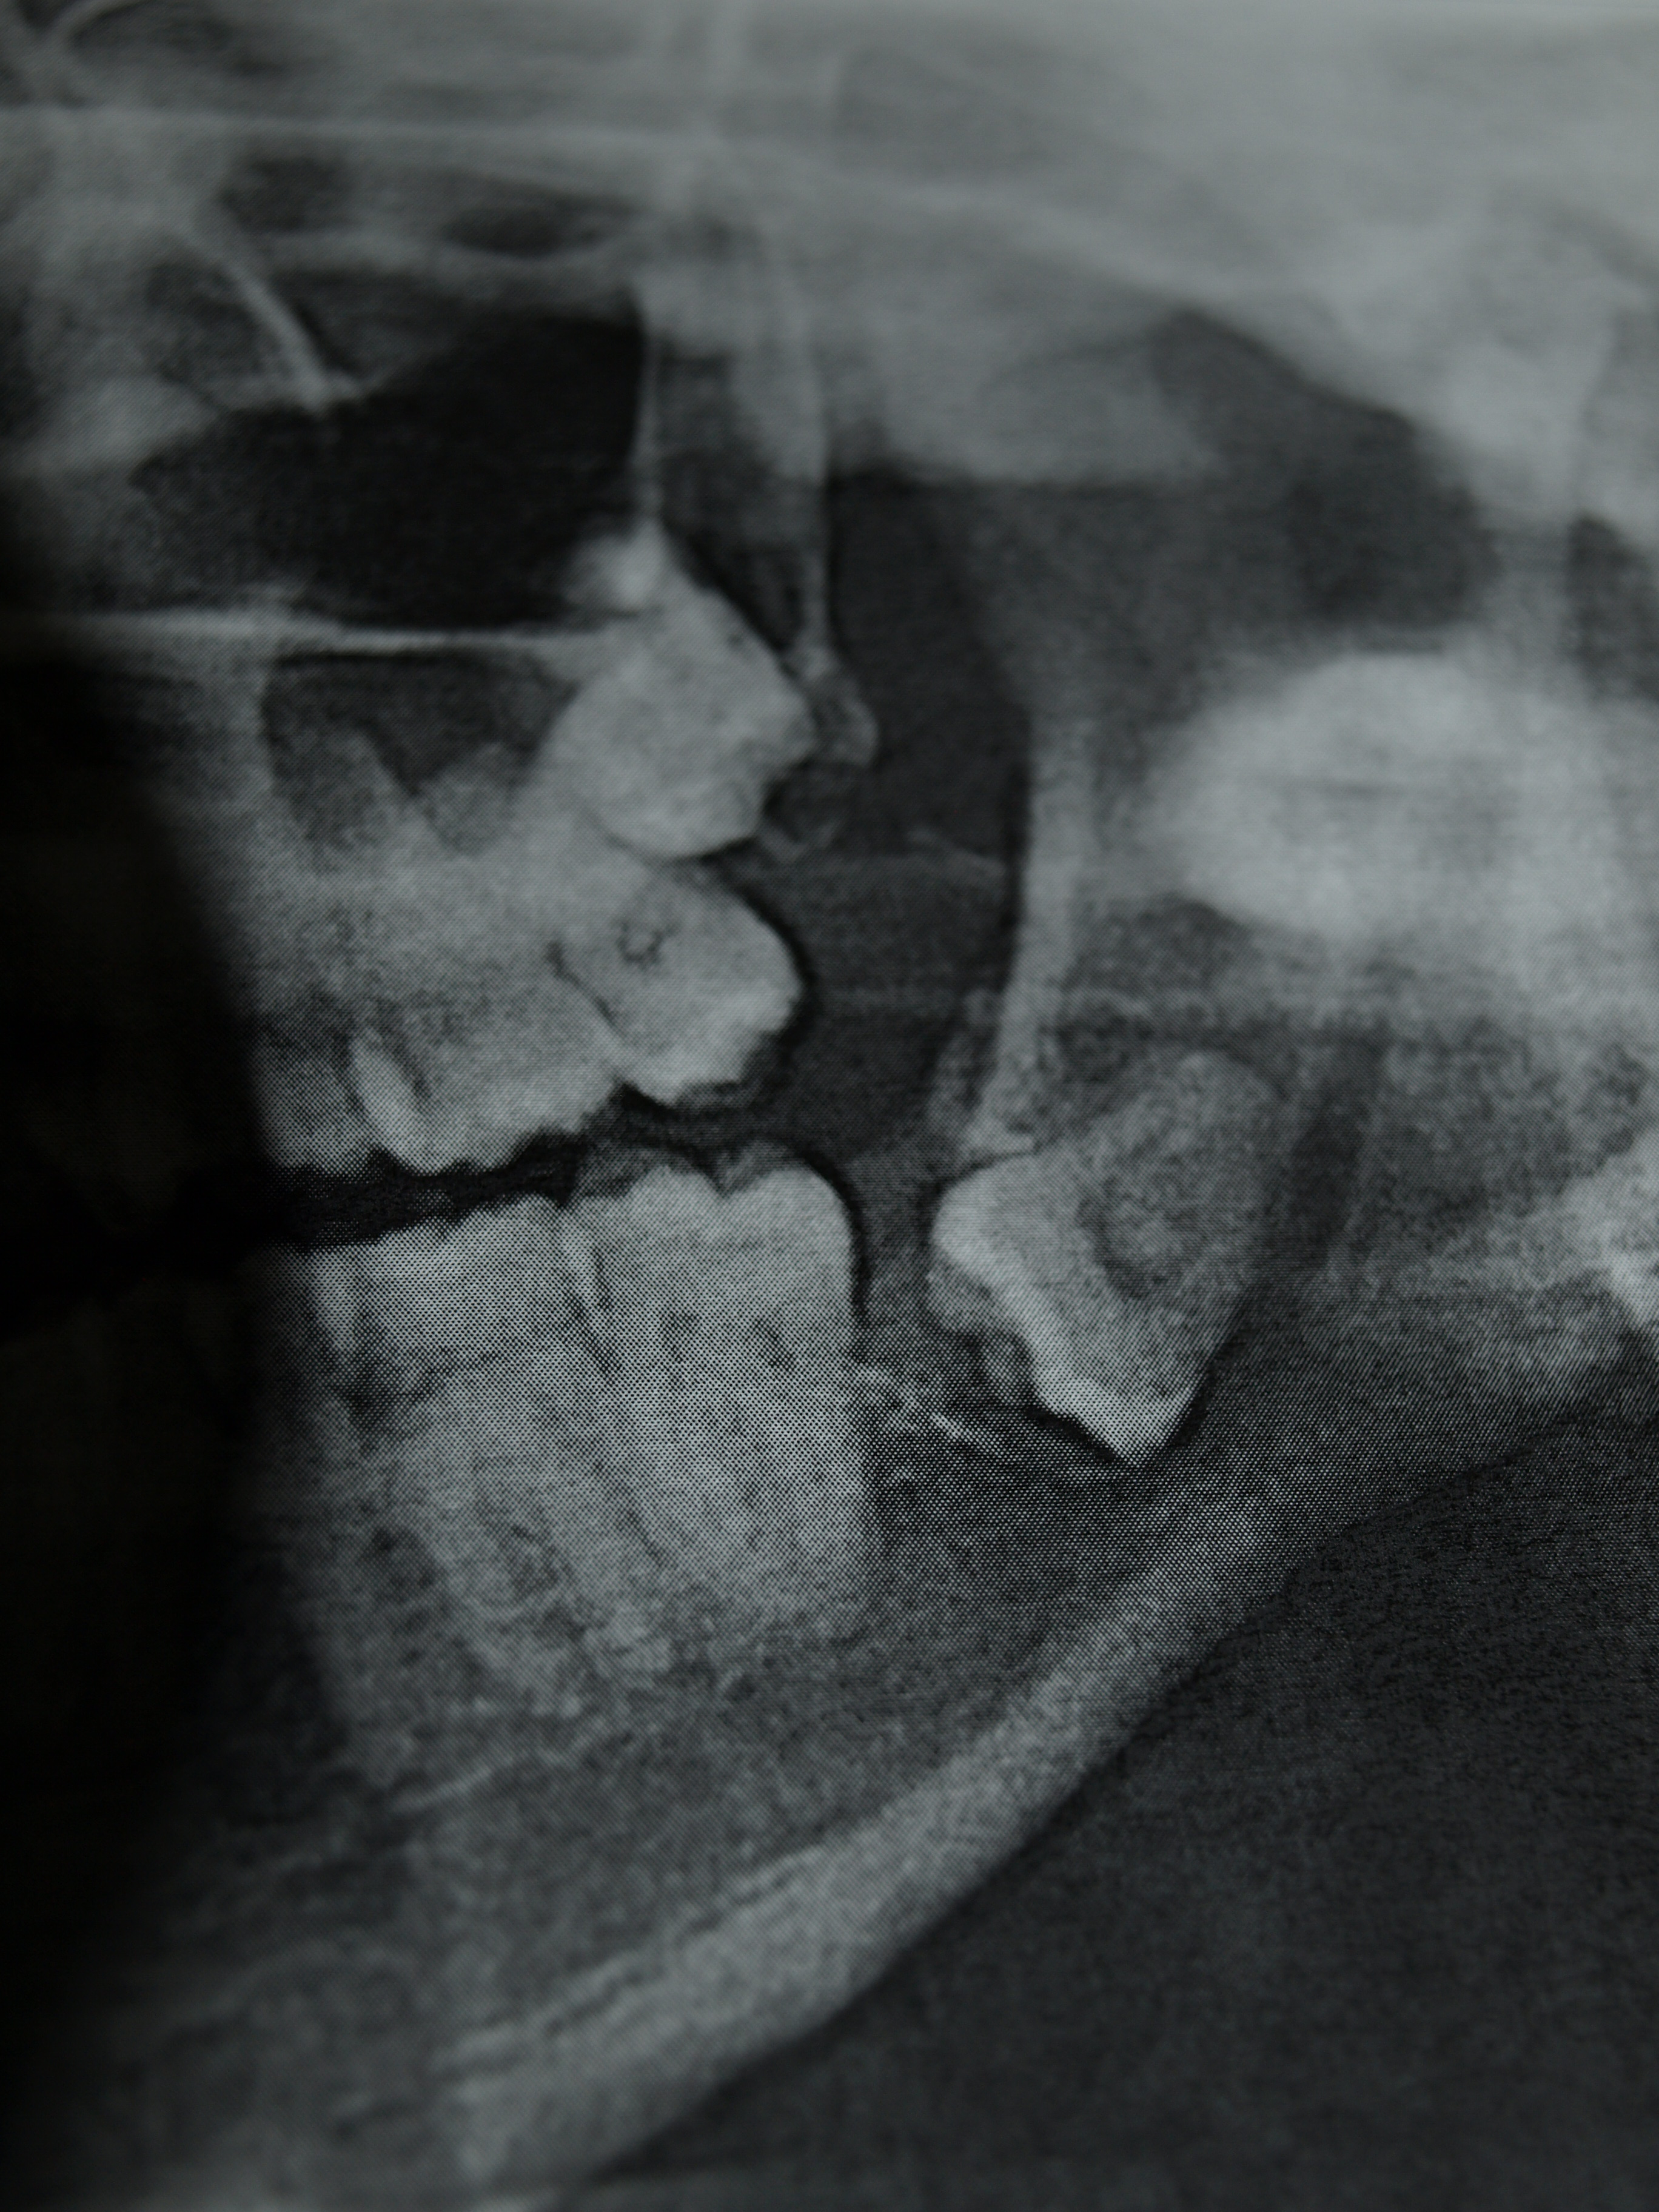 See if you can find the crazy tooth